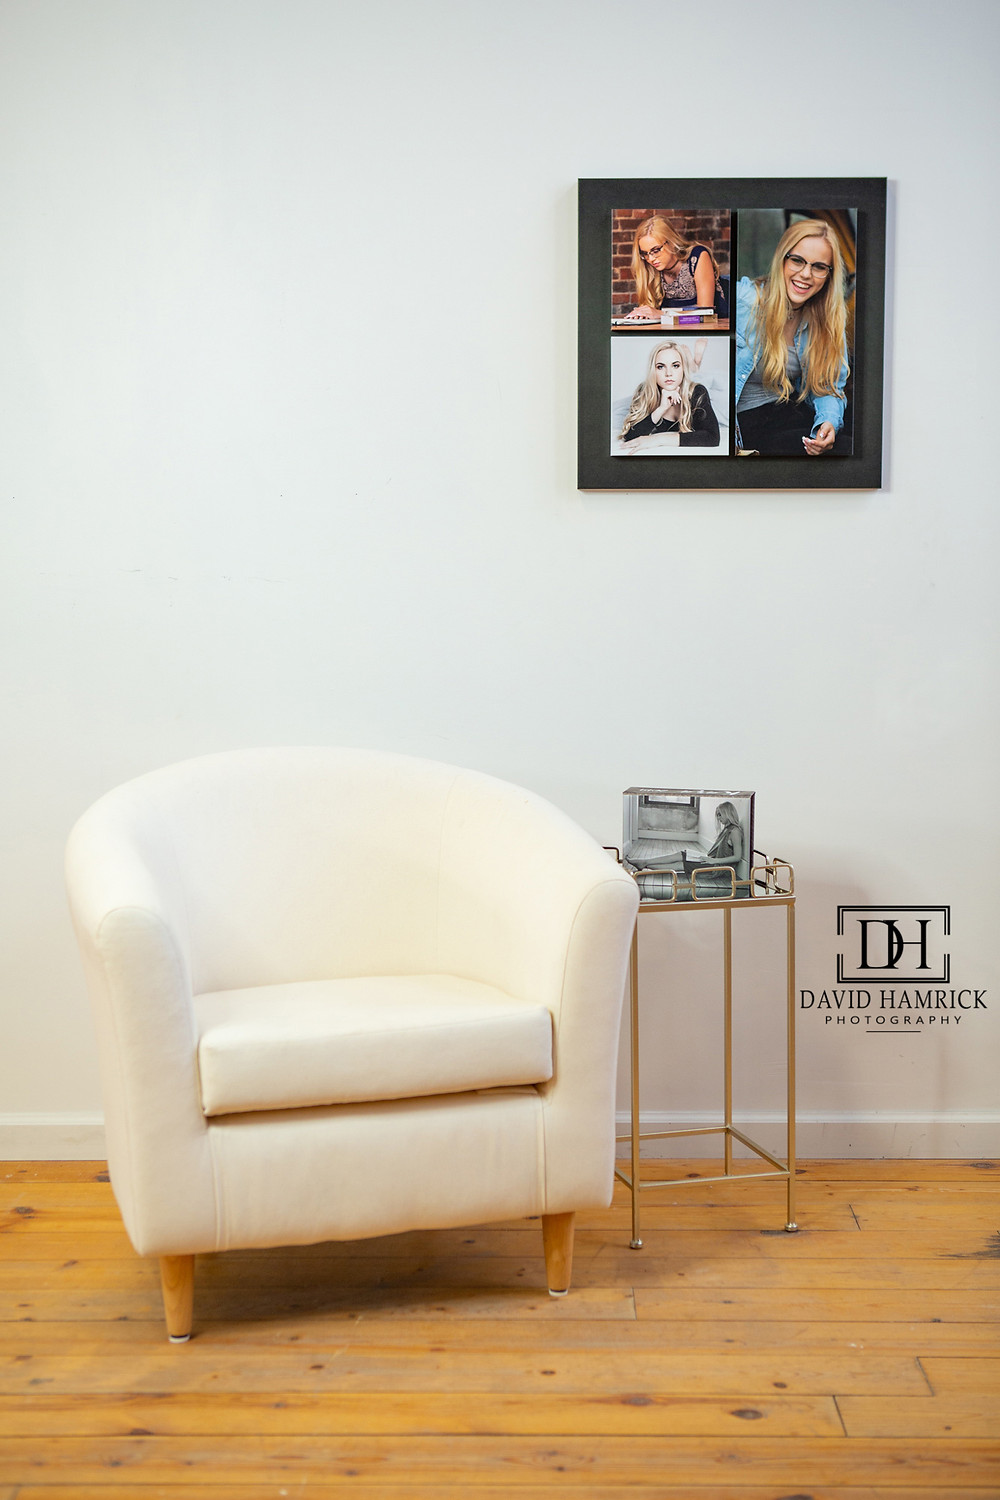 Wall Art and table pieces created by David Hamrick Photography